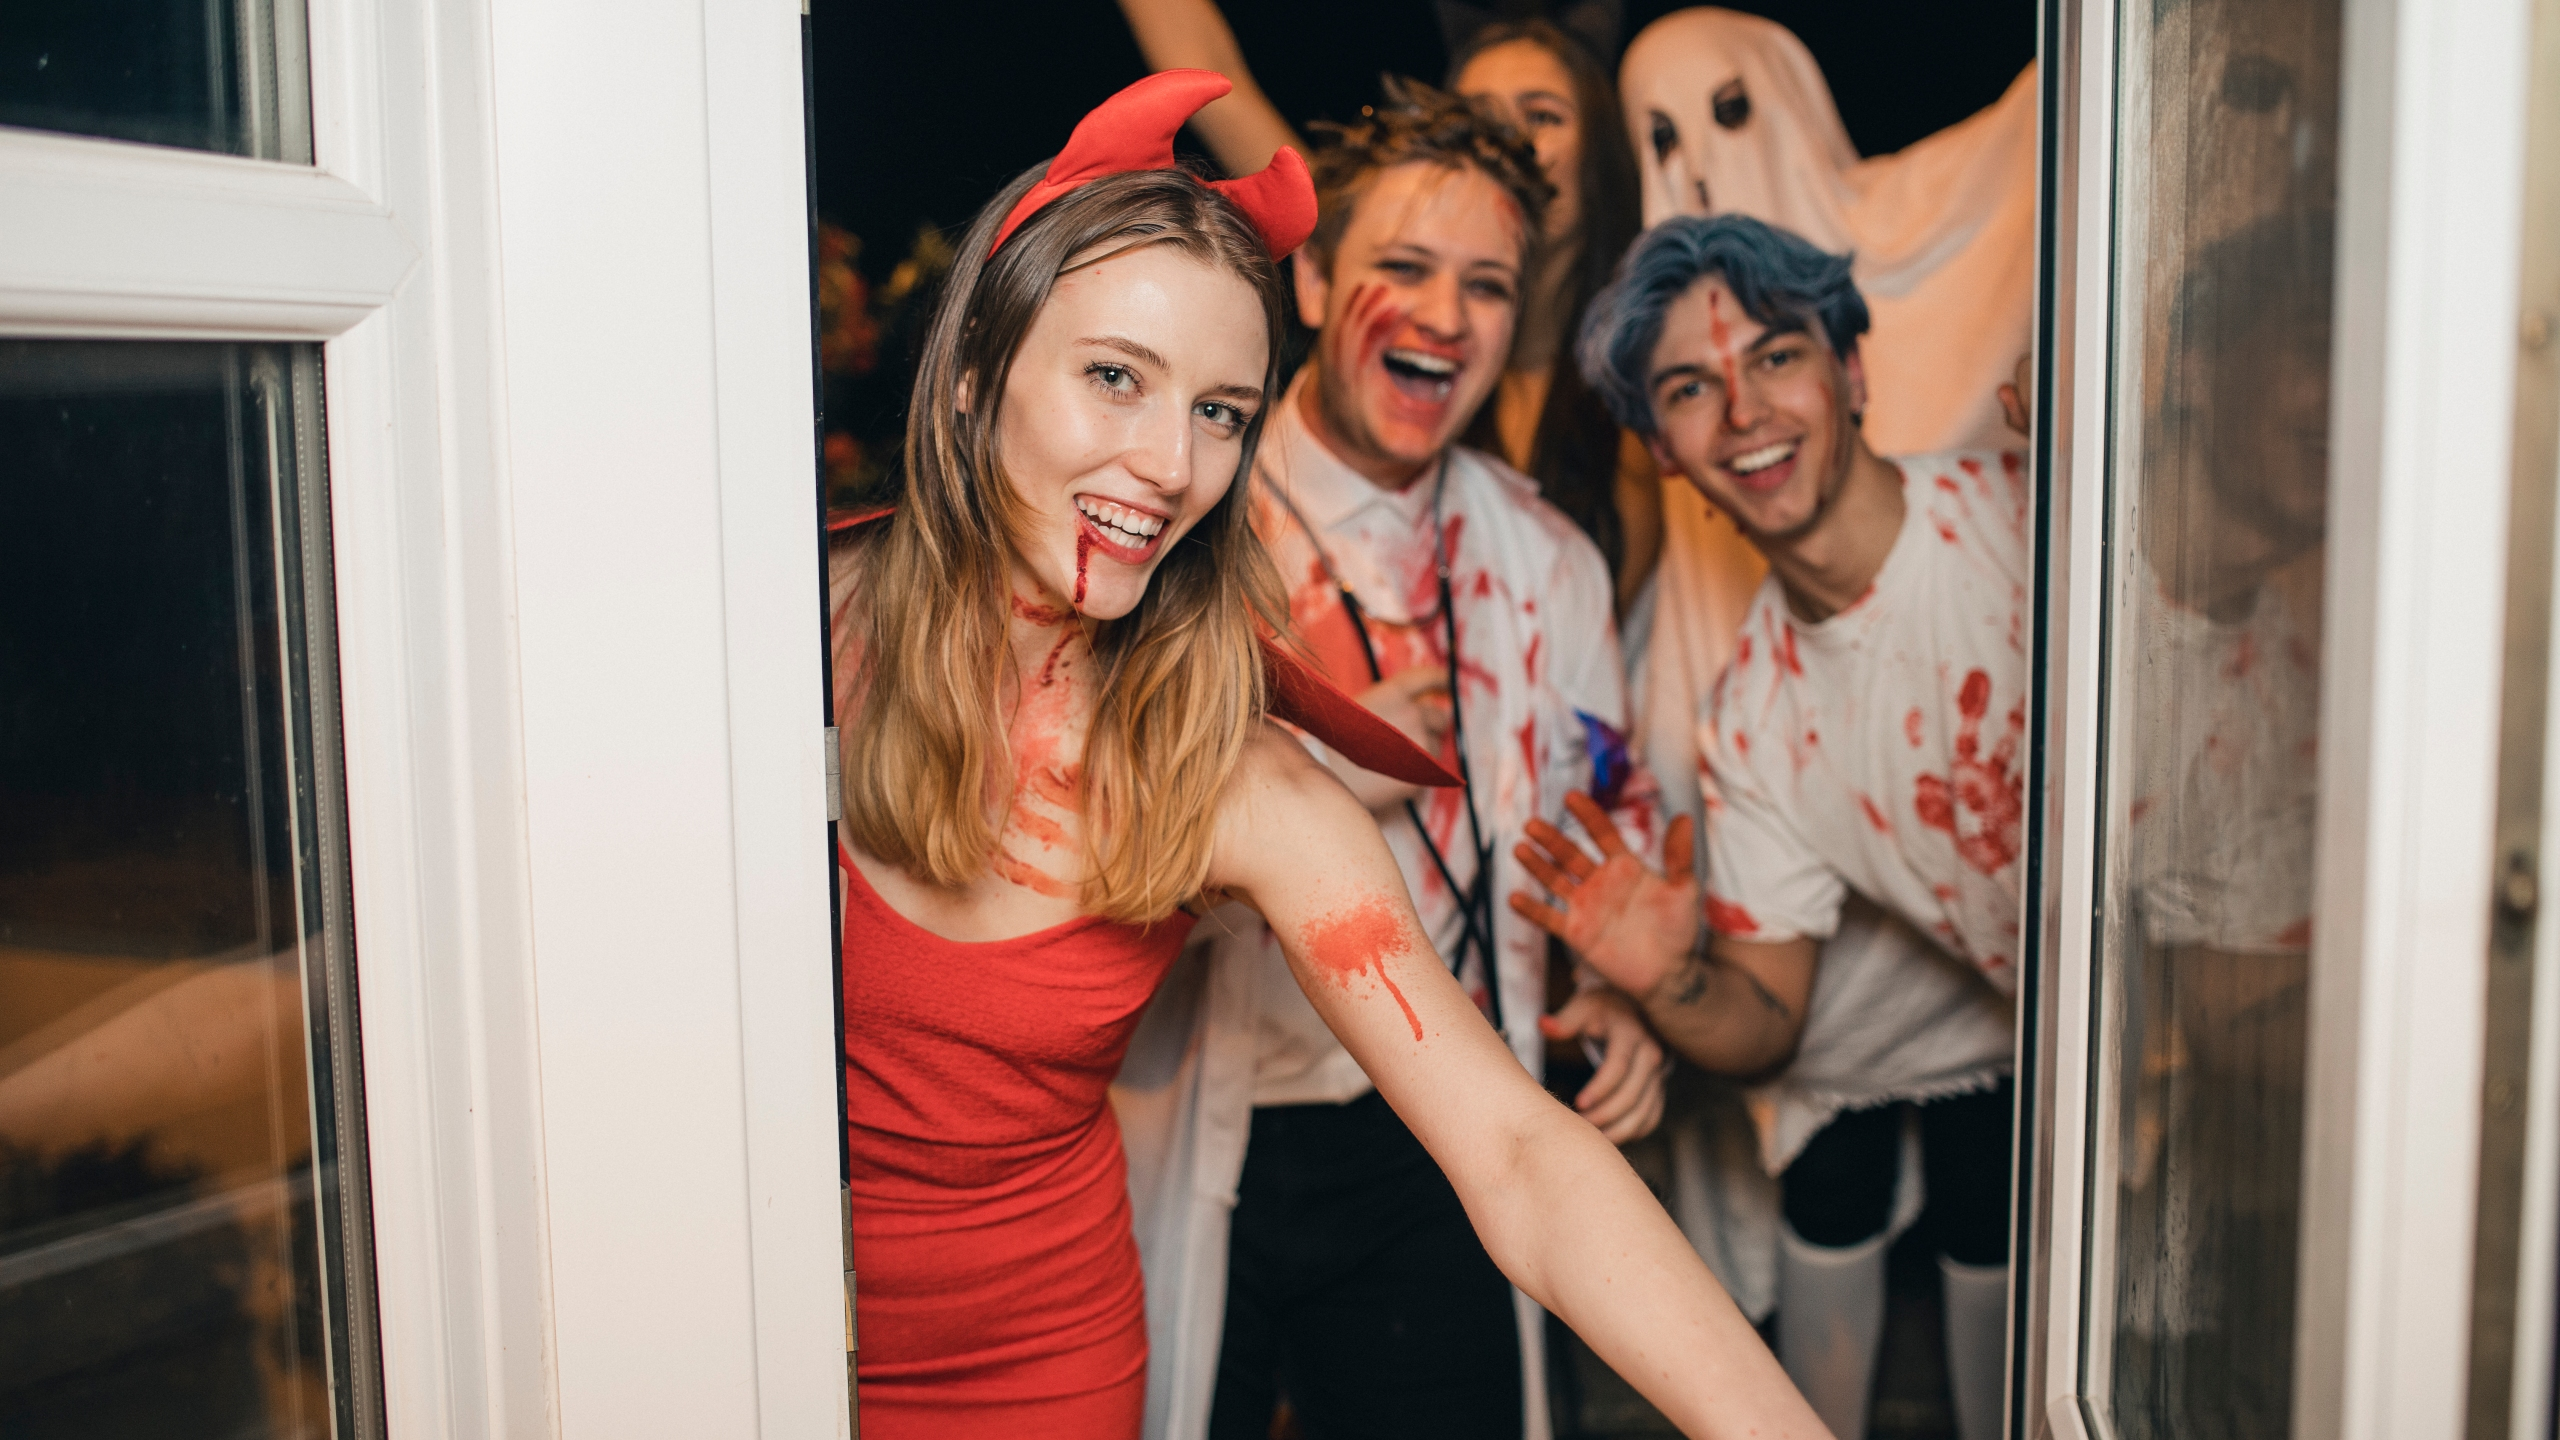 Group of friends dressed up in costumes laughing and having fun as they arrive at a Halloween party.